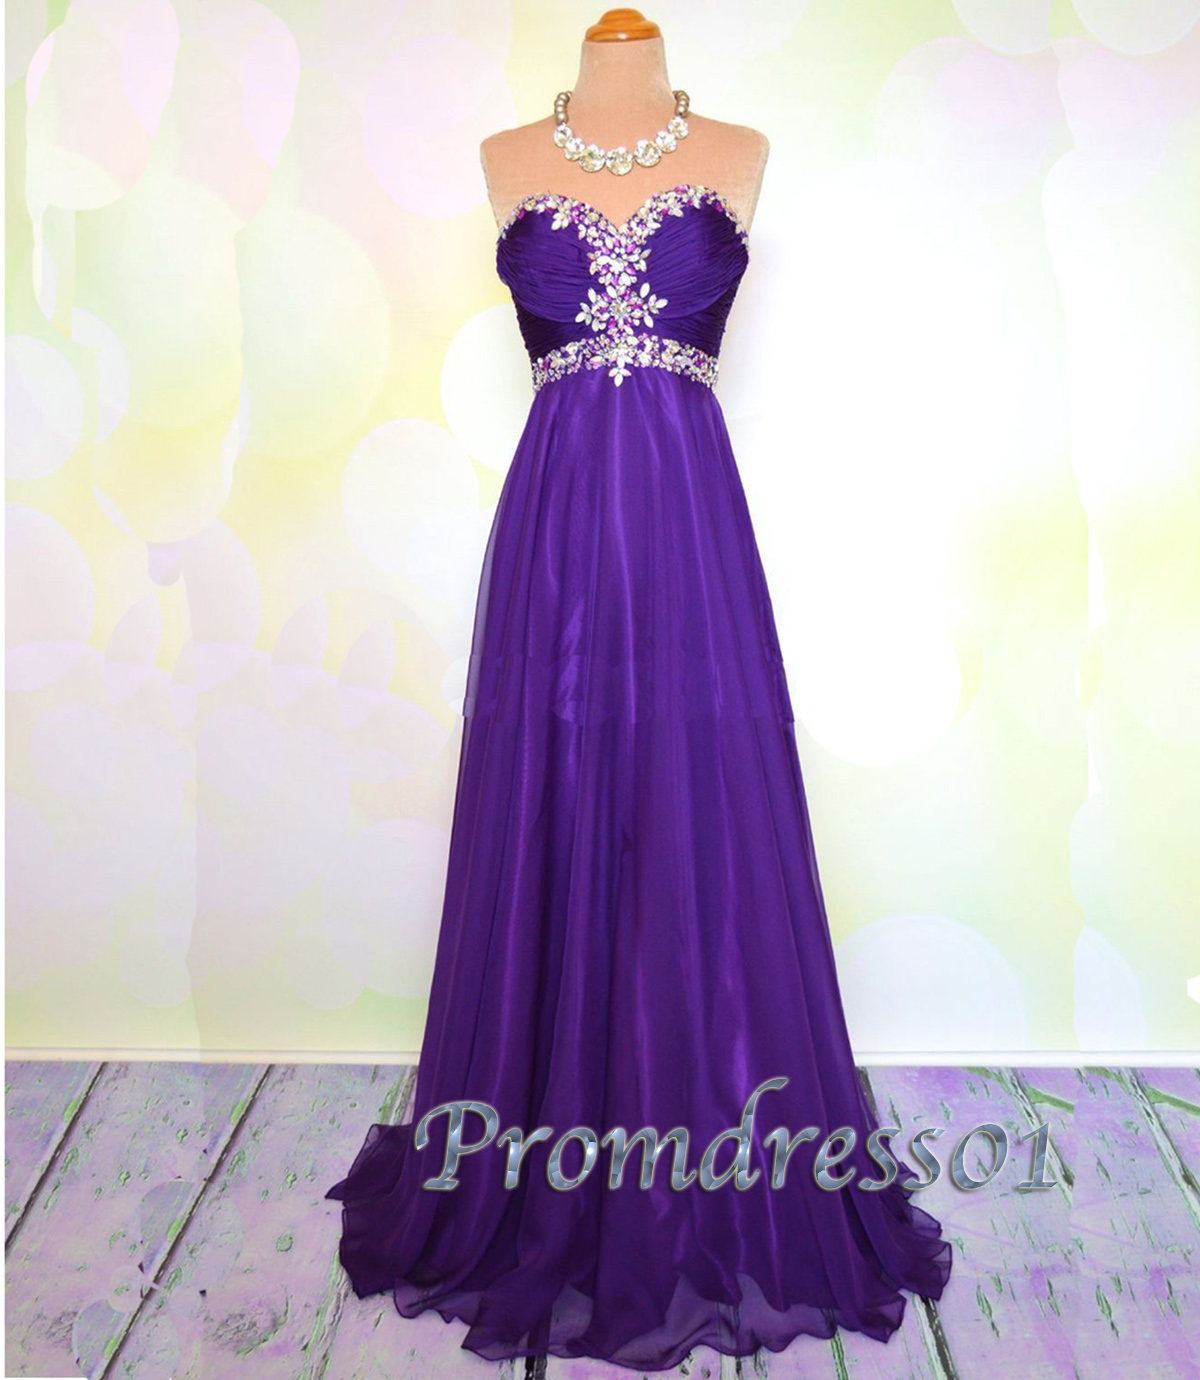 Elegan purple long prom dress with bead and sequin | Prom dresses ...